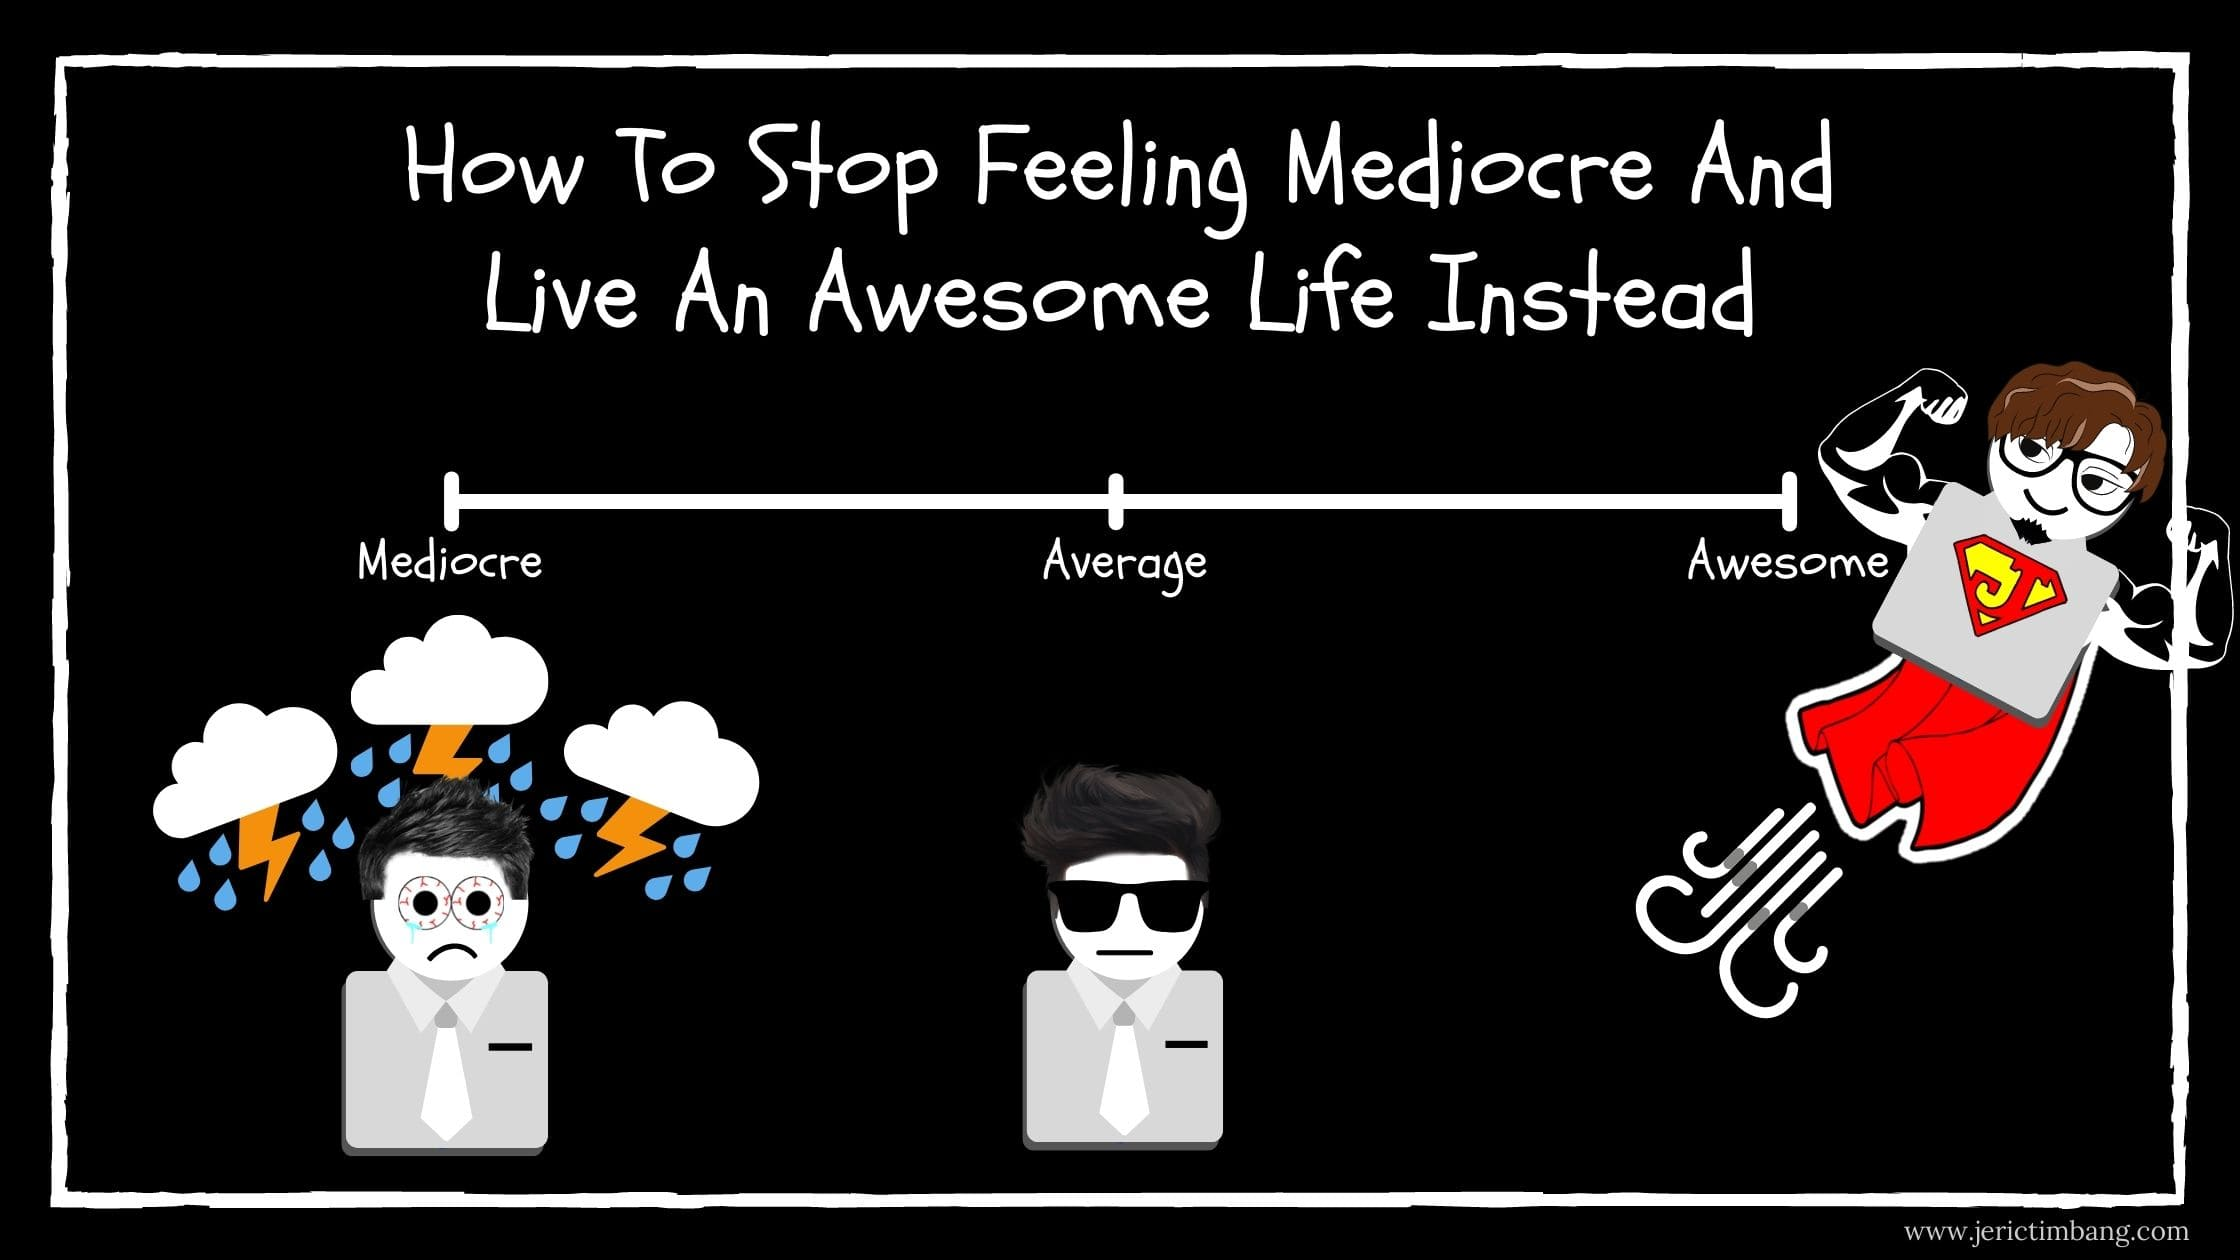 How To Stop Feeling Mediocre And Live An Awesome Life Instead